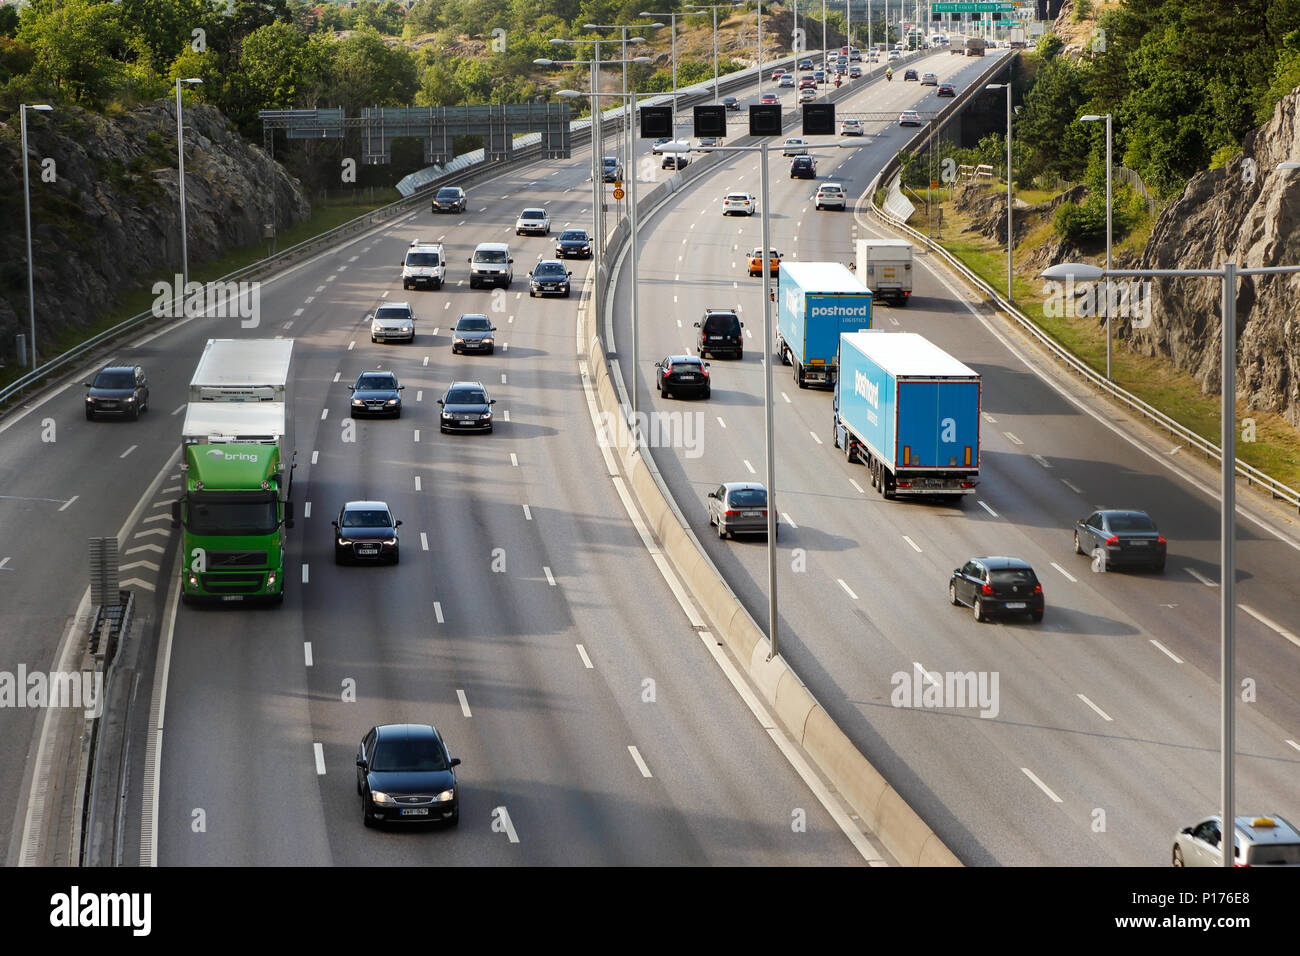 Stockholm, Sweden - July 8, 2016: High angel view of the freeway Essingleden hosting the roads E4 and E20 at Nyboda looking north. - Stock Image